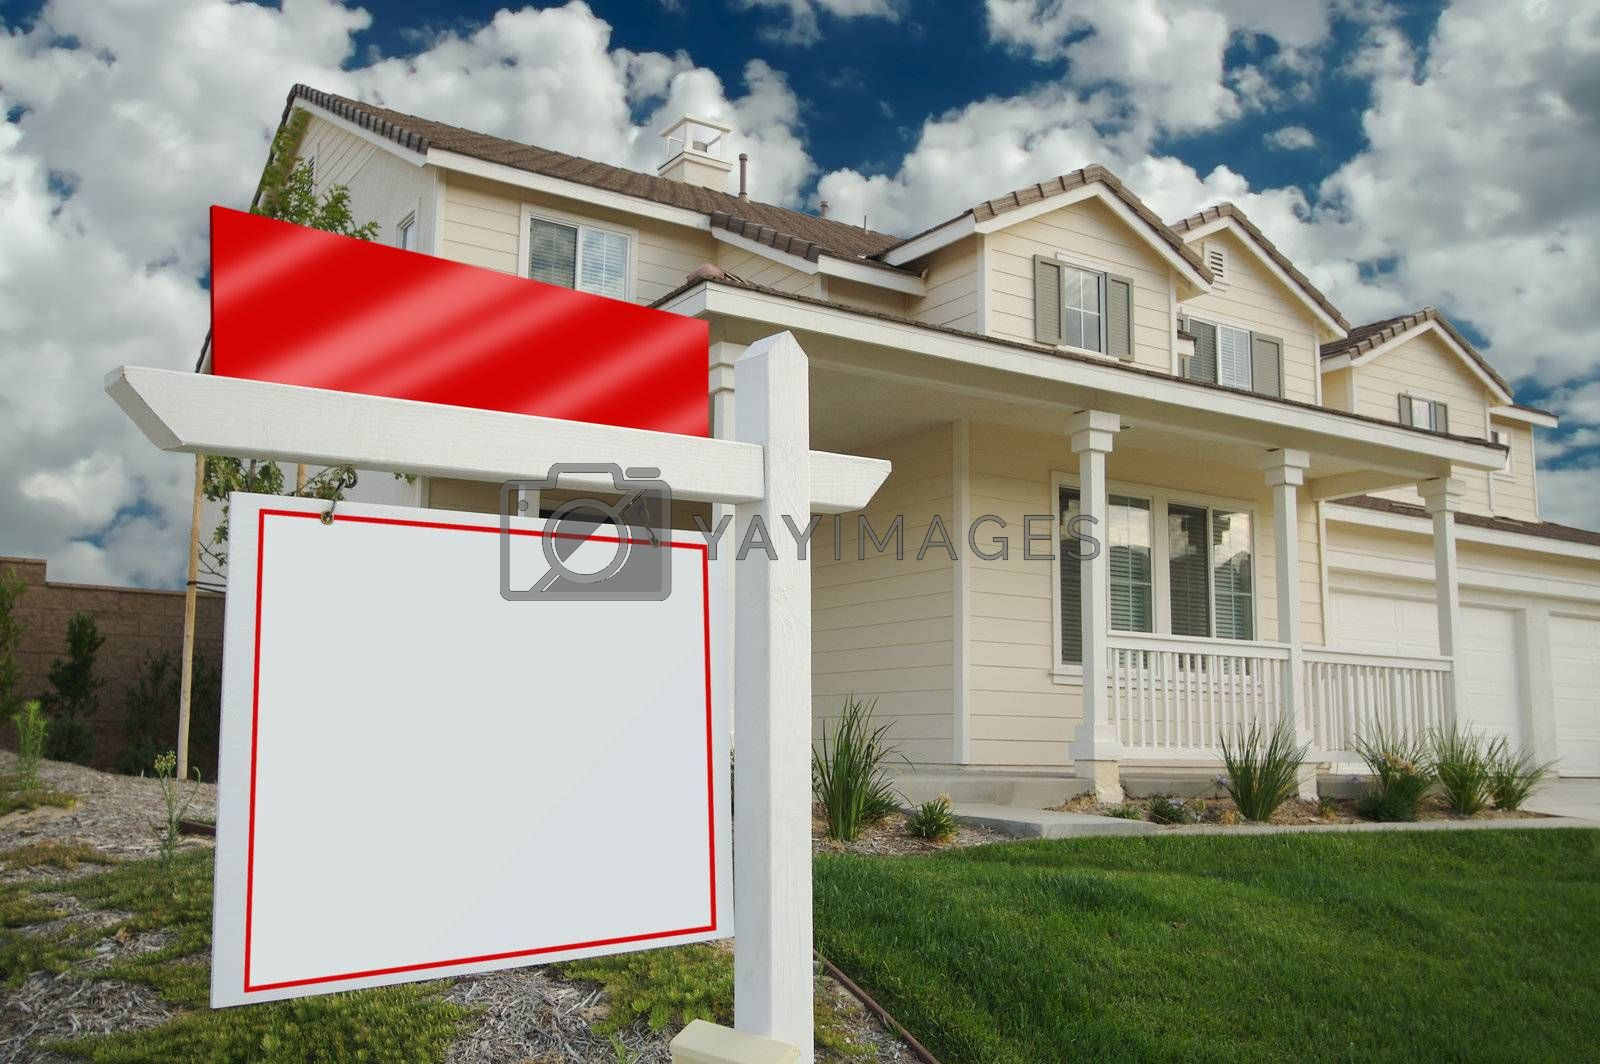 Blank Real Estate Sign & New Home by Feverpitched